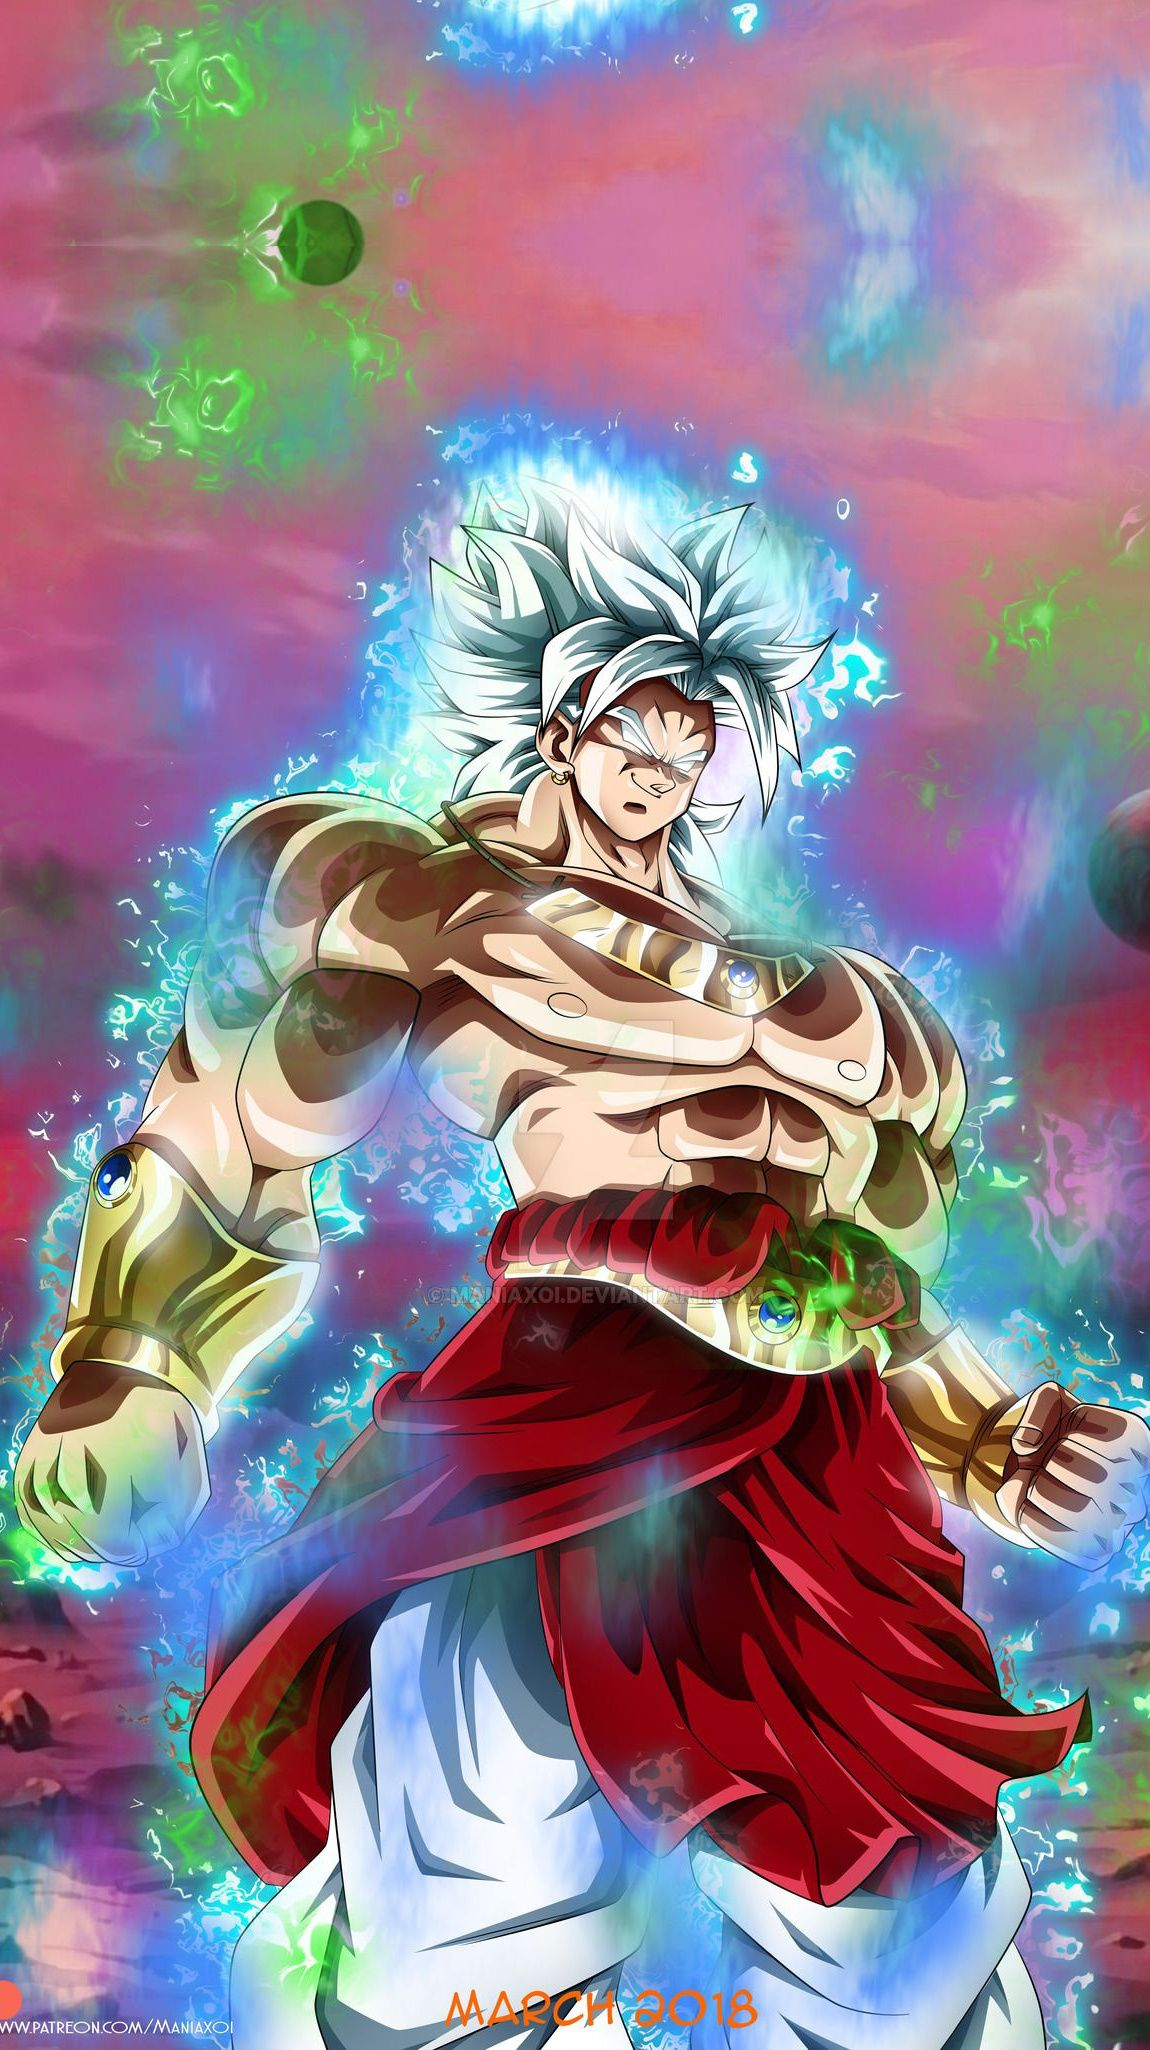 Dragon ball - Broly ultra instinct [1150x2050] + live wallpaper in comments! | Beautiful ...